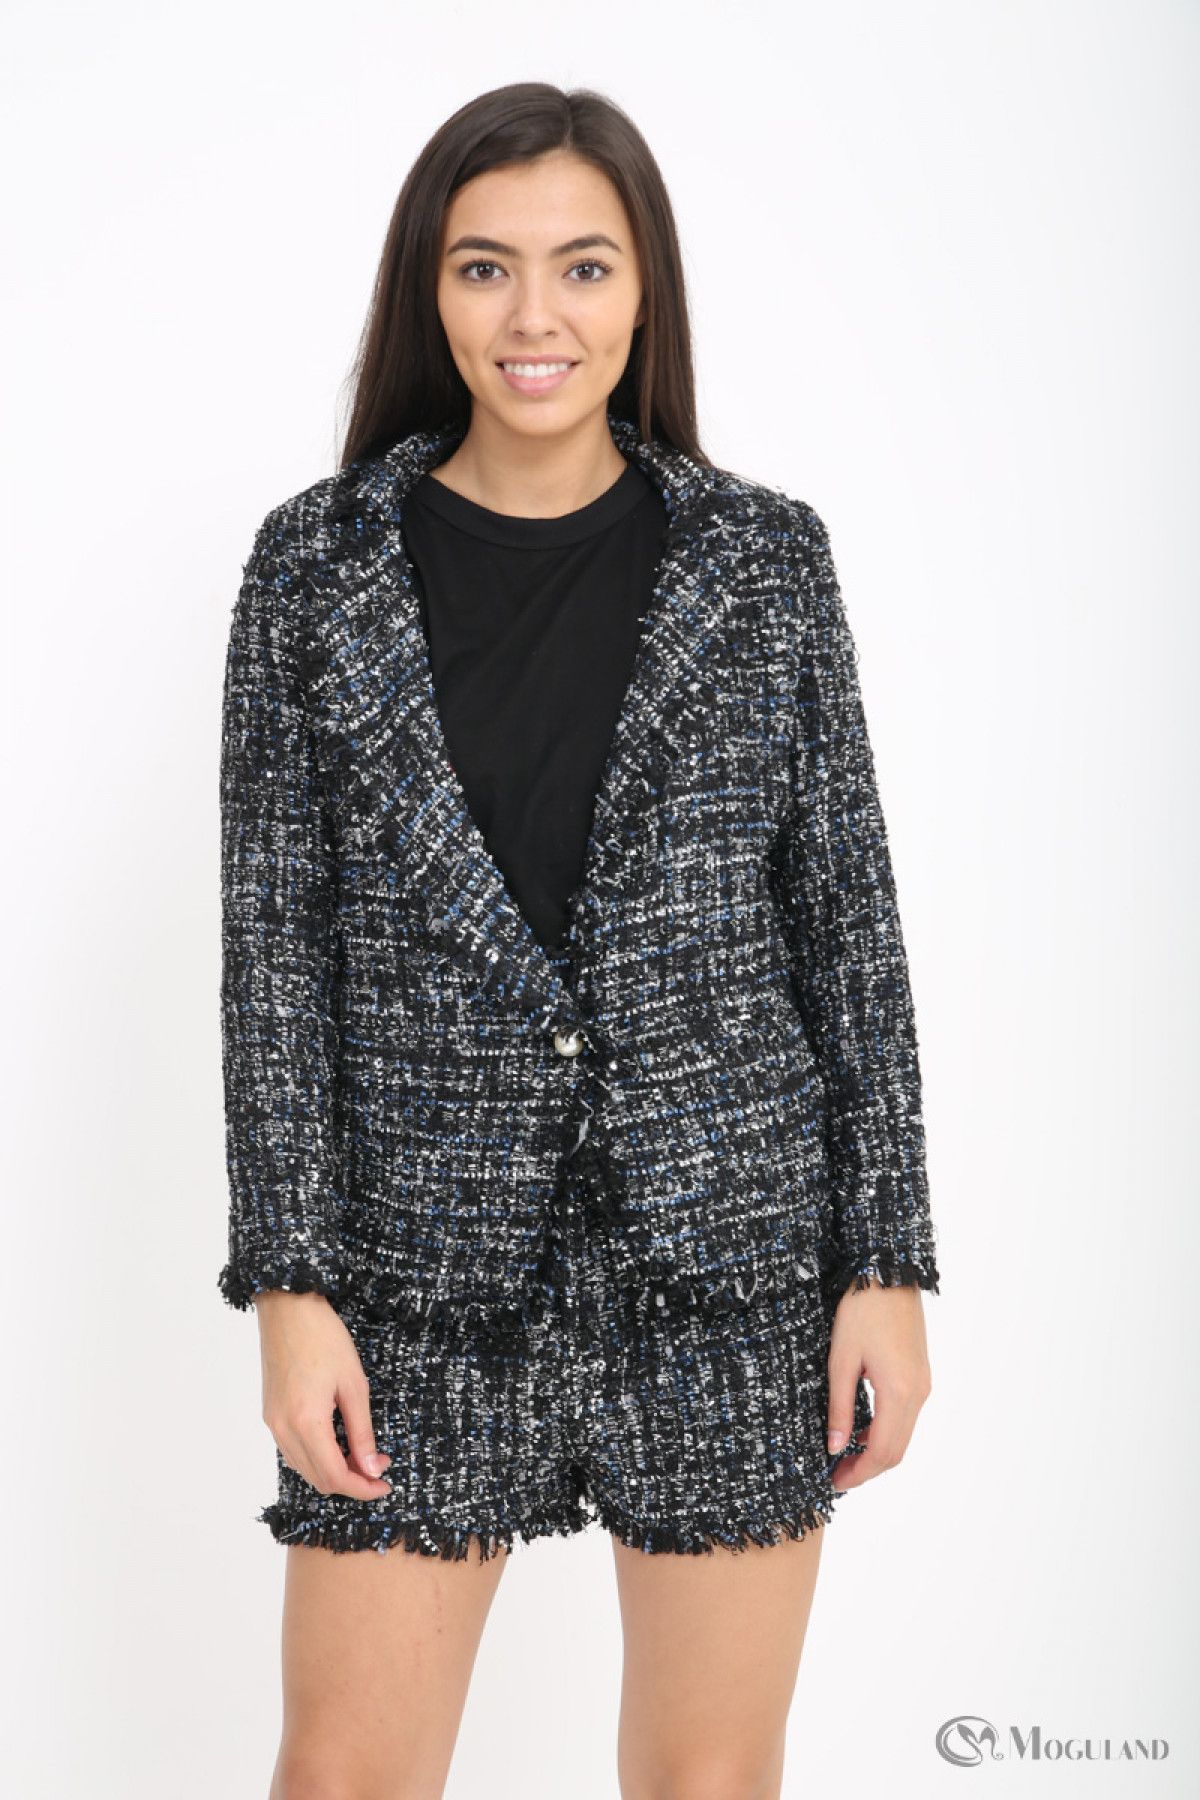 Ladies black boucle blazer and shorts co-ord wholesale - Women s Wholesale  Clothing Supplier 73b6050d4